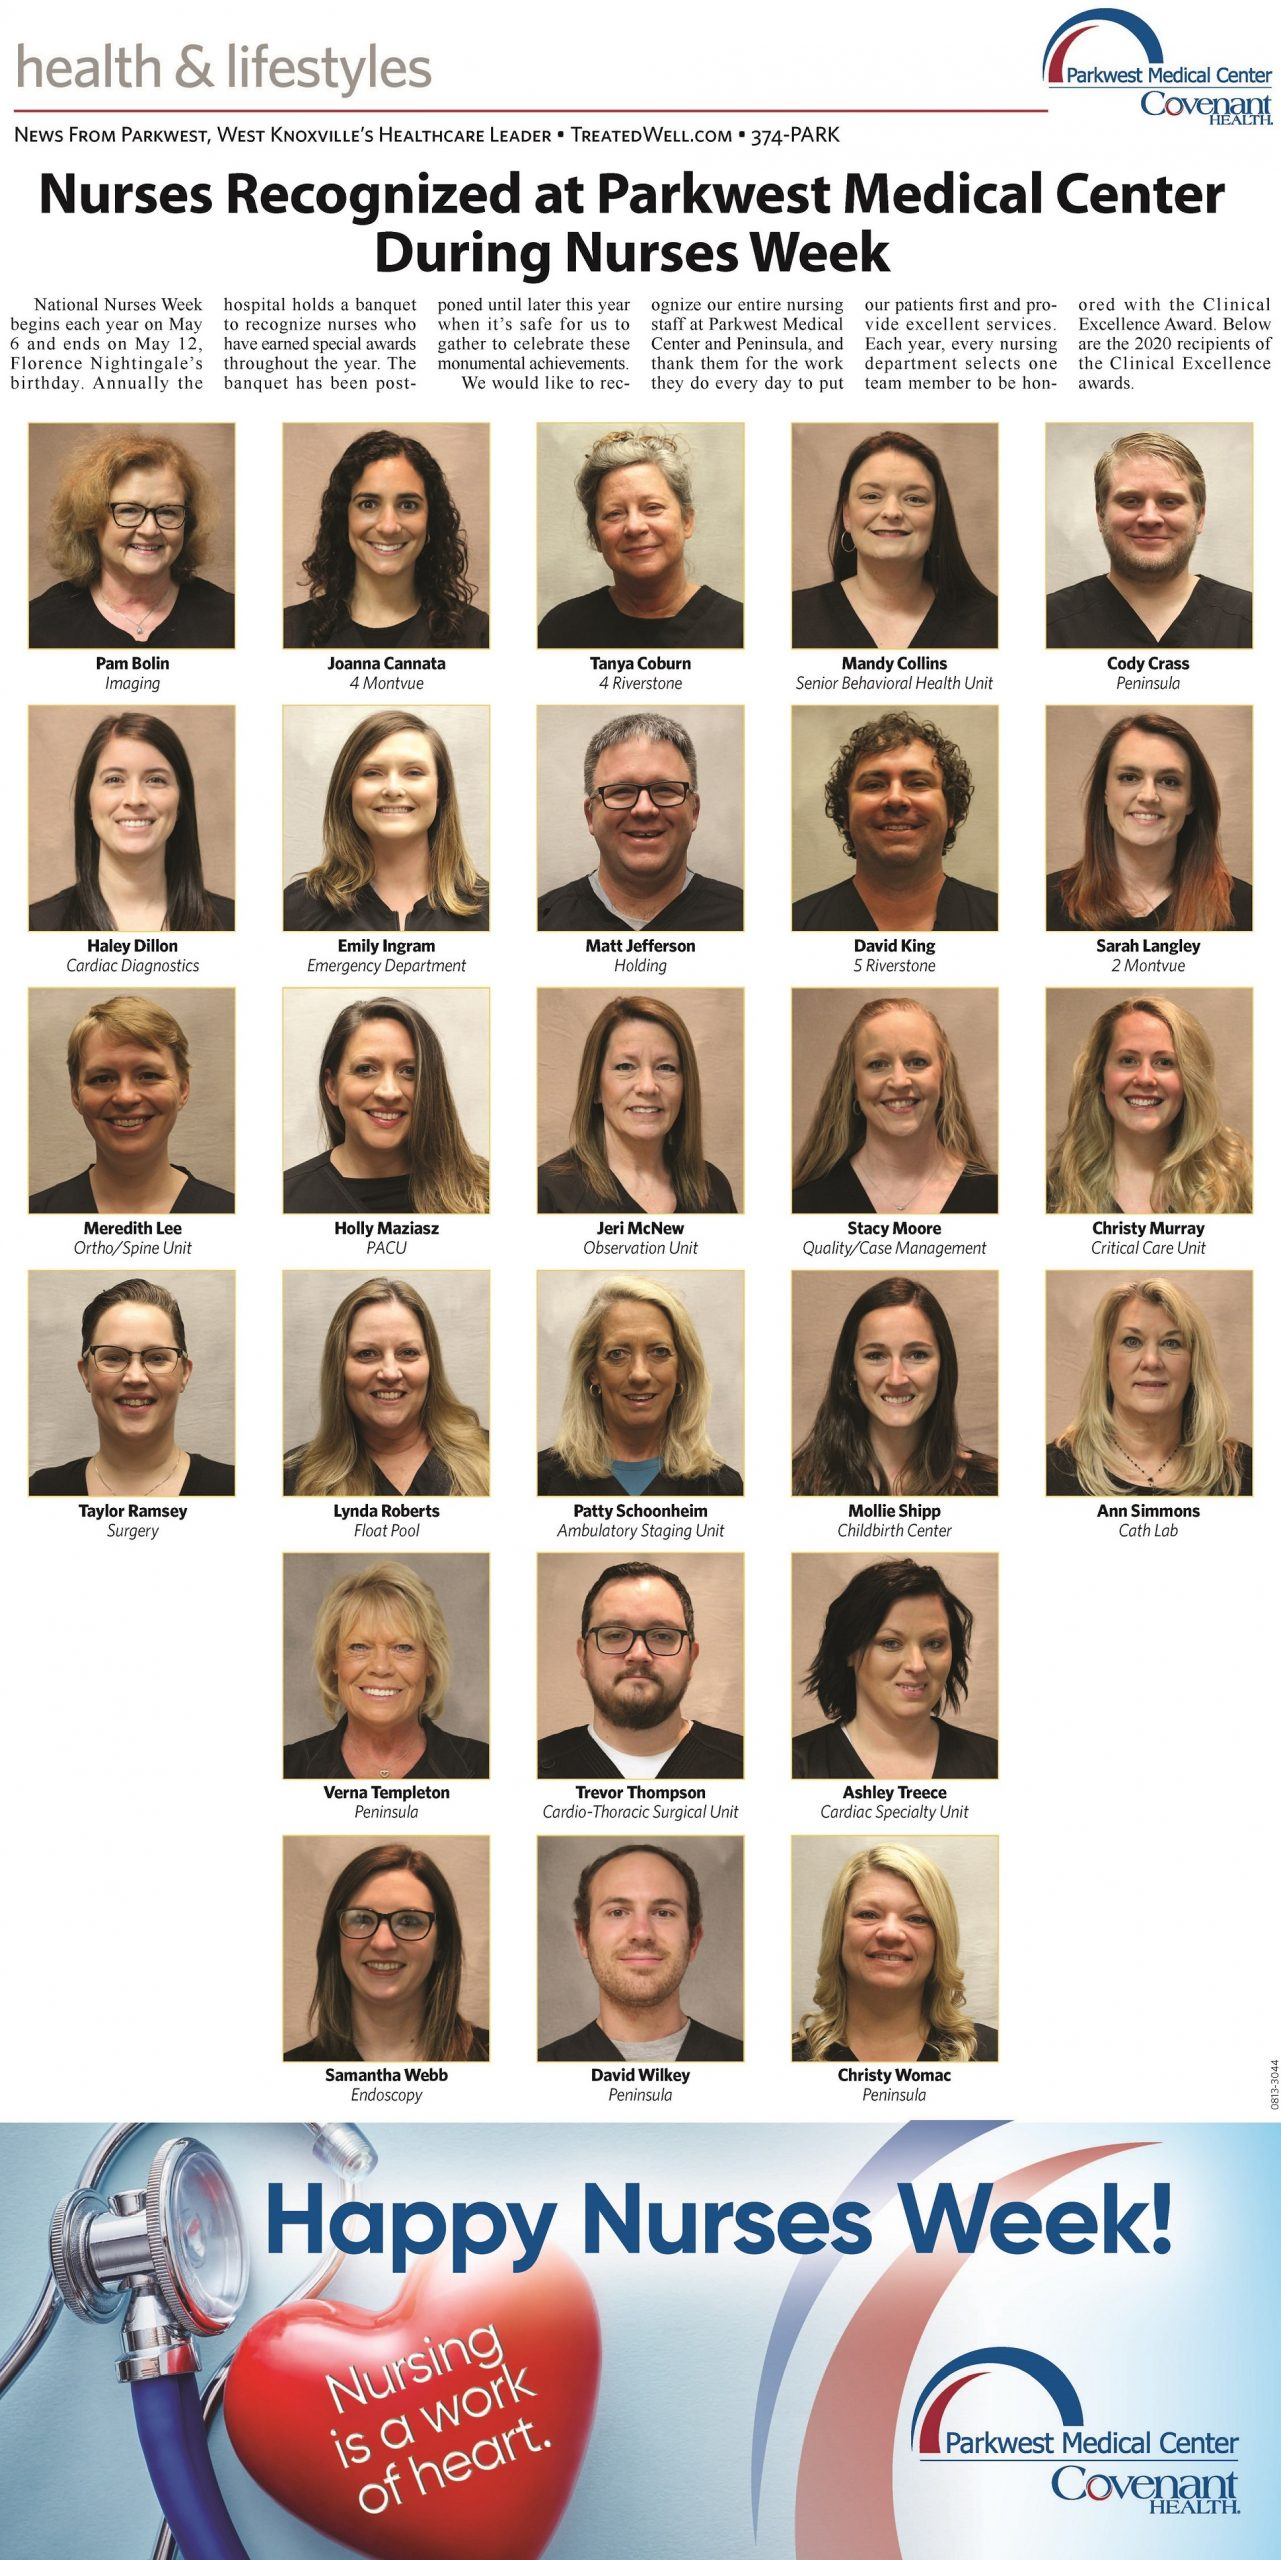 Headshots of Clinical excellence winners